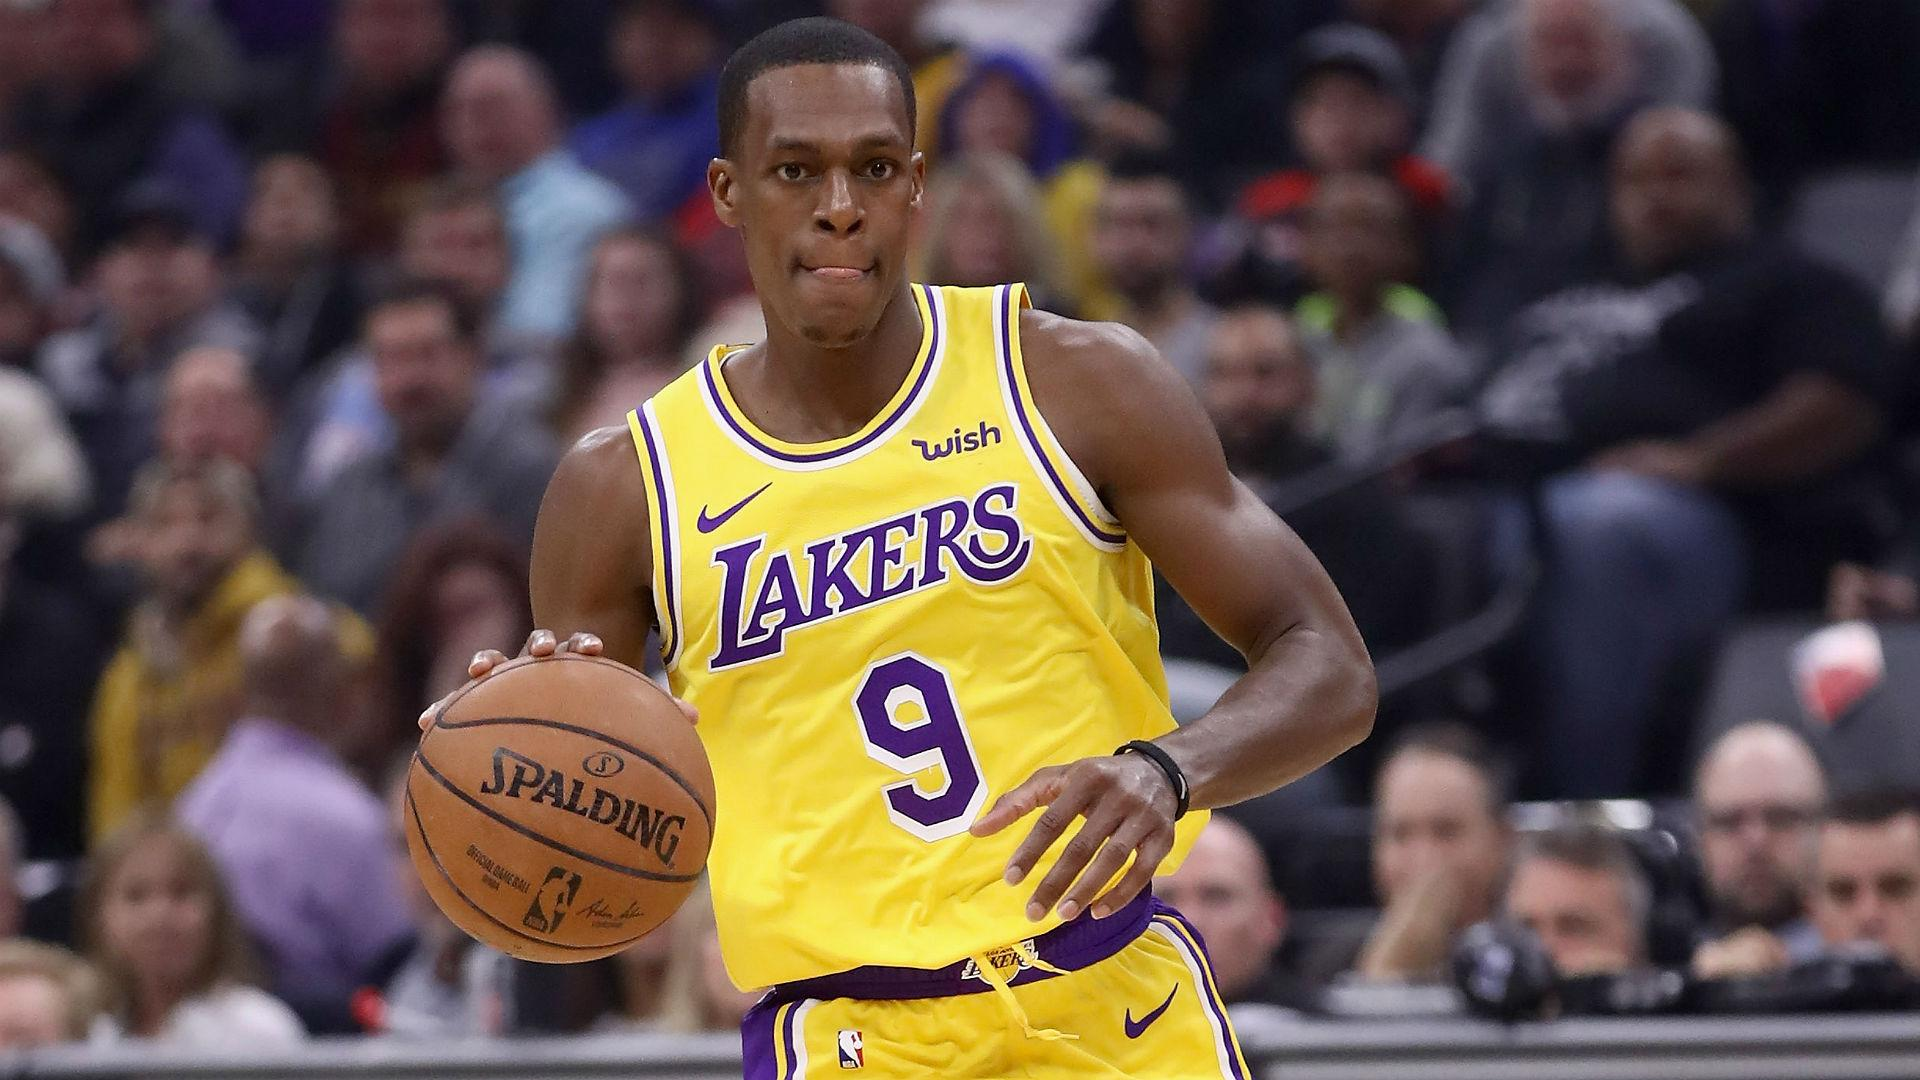 Rajon Rondo injury update: Lakers guard (finger) out 4-5 weeks after ...